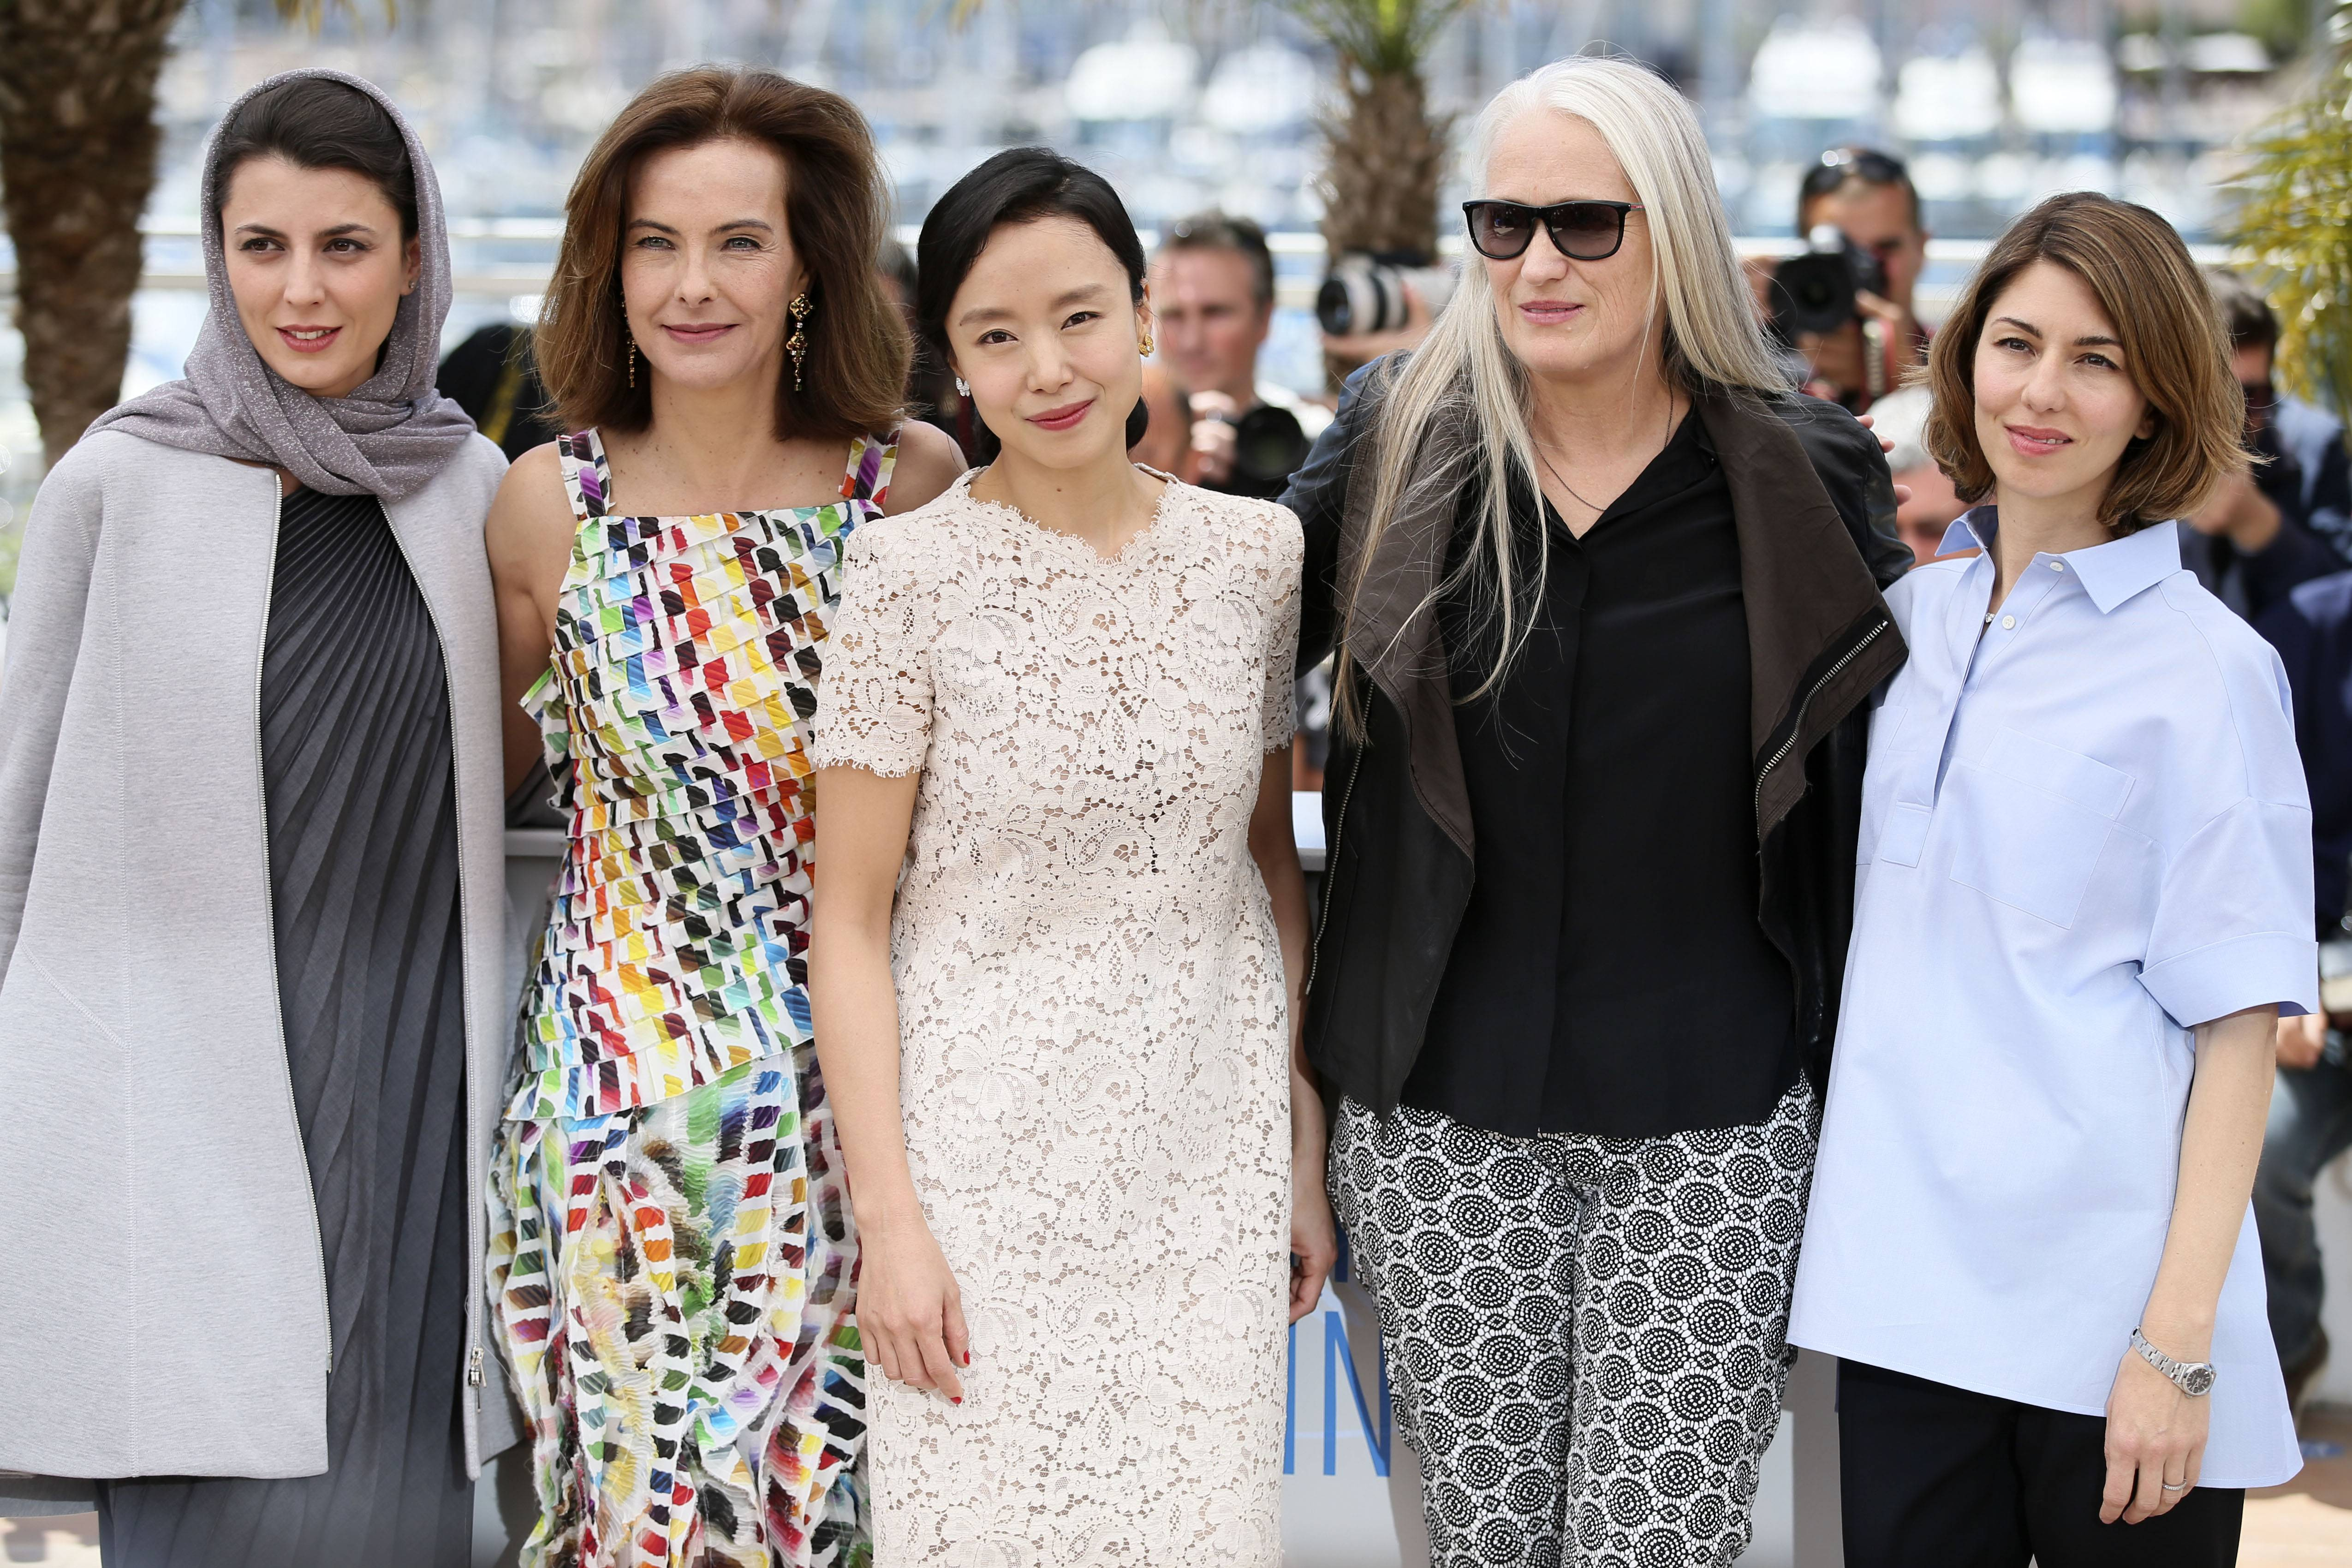 President of the jury Jane Campion, second left, poses with members of the jury from left, Leila Hatami, Carole Bouquet, Jeon Do-yeon and Sofia Coppola during a photo call Wednesday for members of the jury at the 67th Cannes Film Festival in southern France.